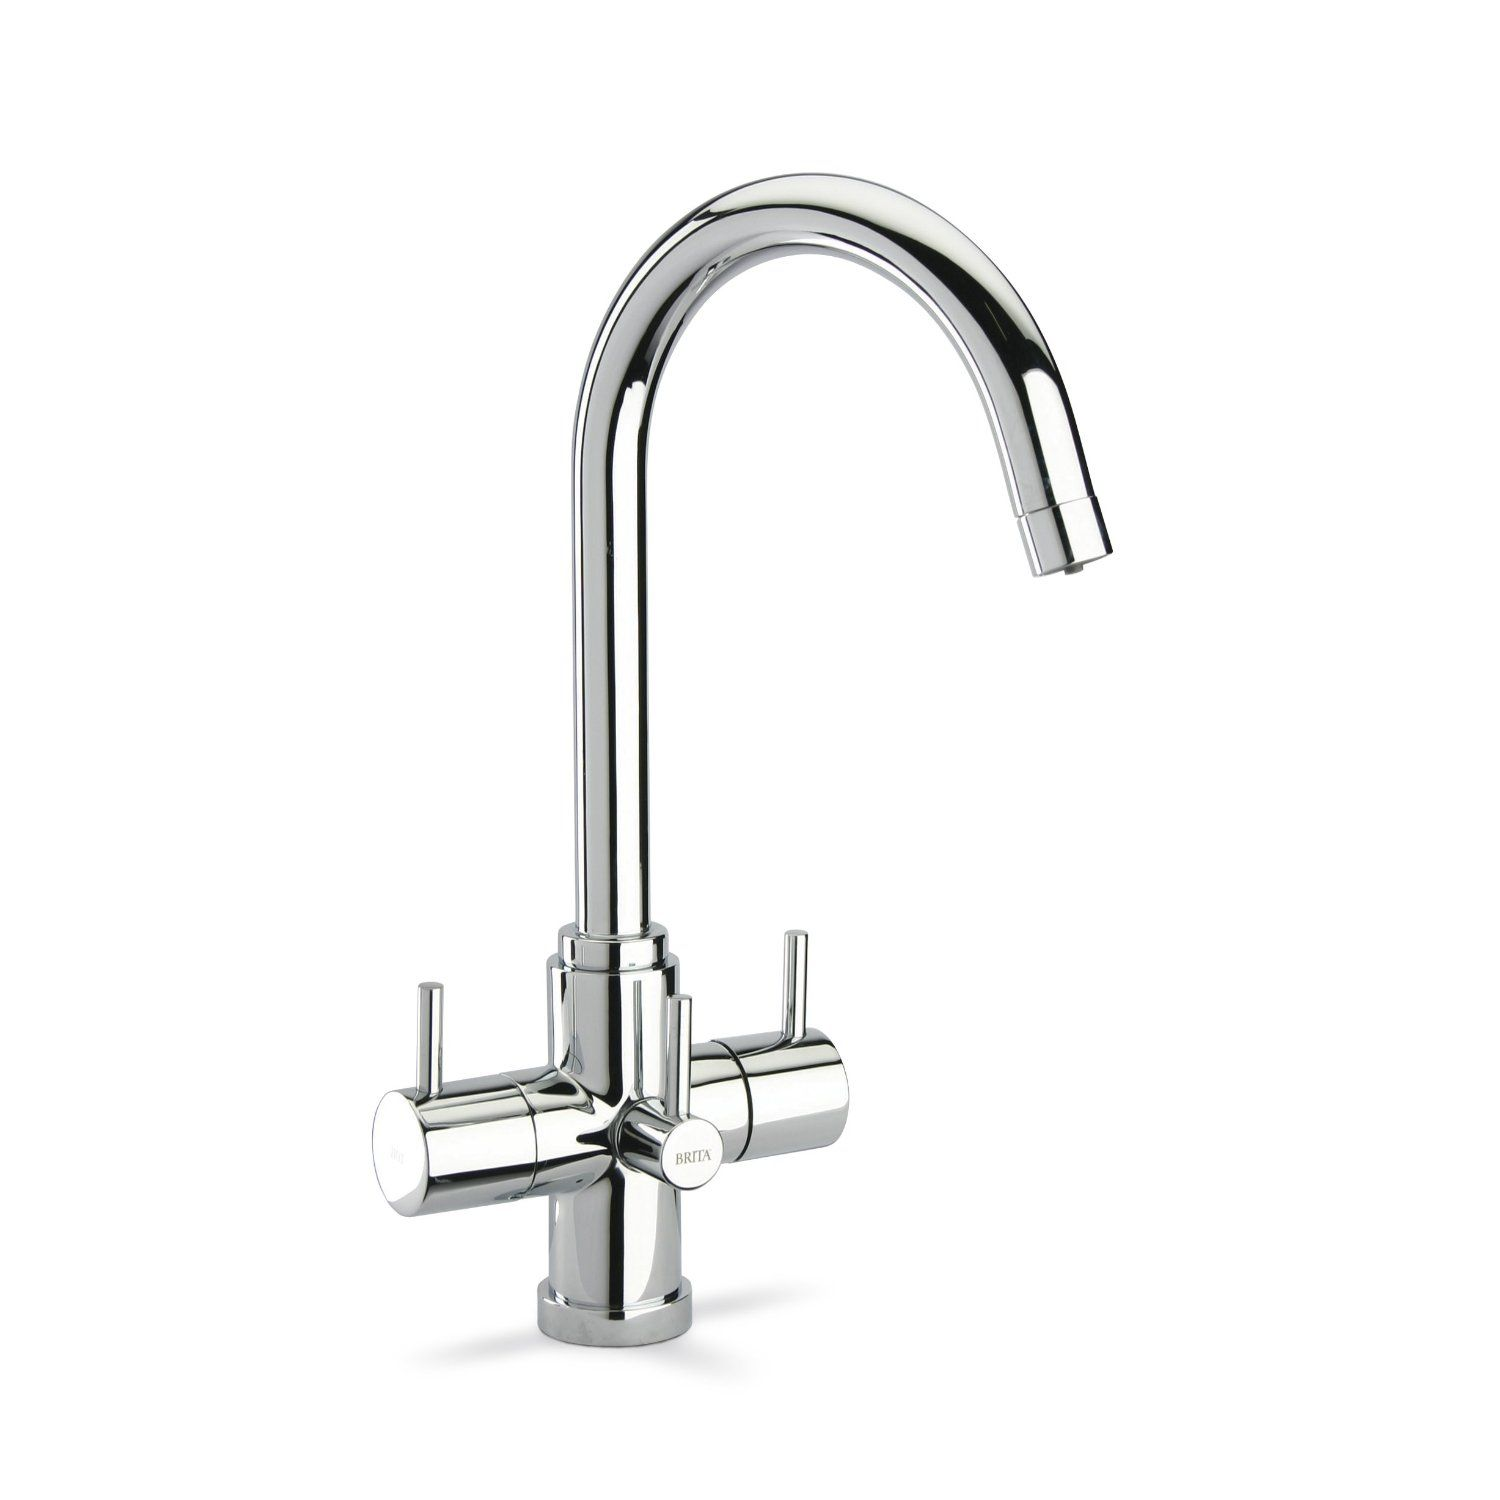 Brita Torlan Kitchen Tap Chrome Effect